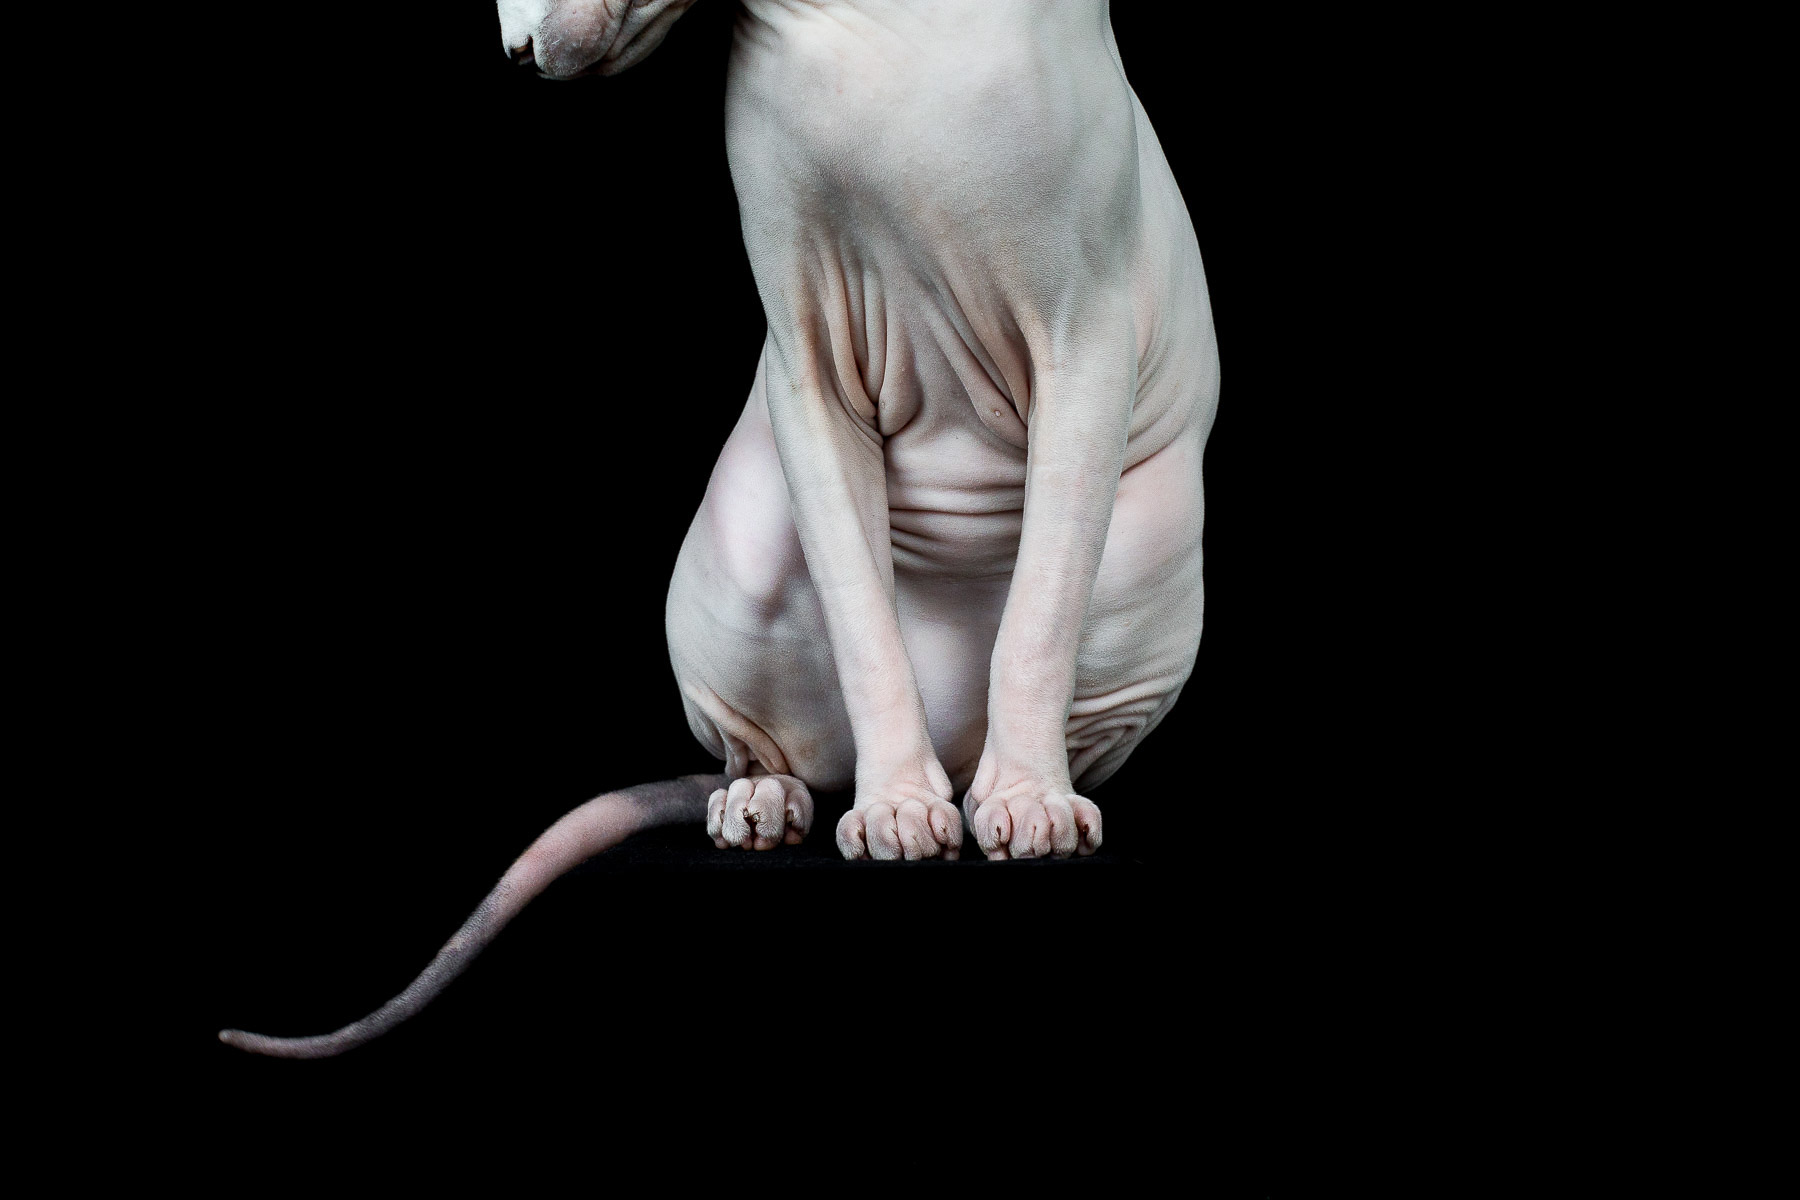 sphynx-cat-photos-by-alicia-rius-17.jpg